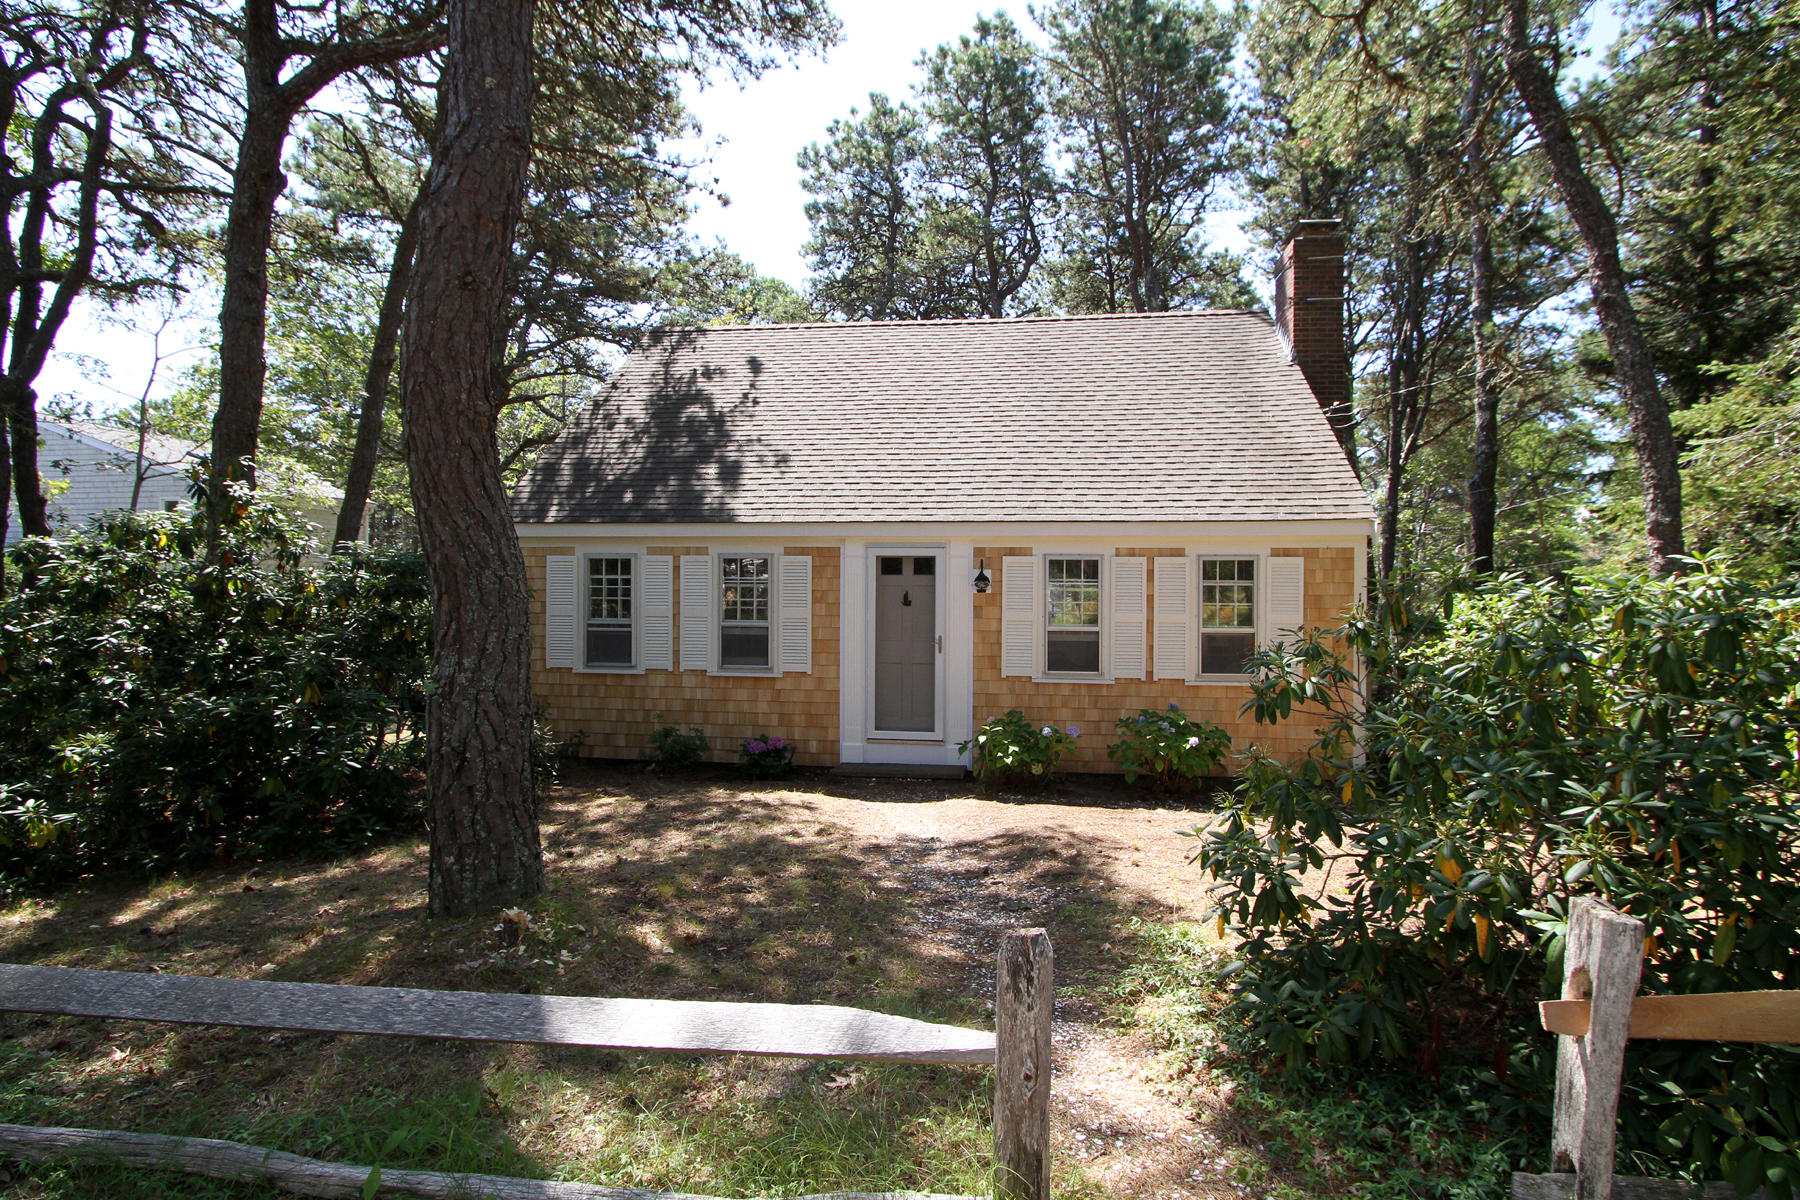 Single Family Homes for Active at 1015 G Street, Wellfleet, MA 1015 G Street Wellfleet, Massachusetts 02667 United States